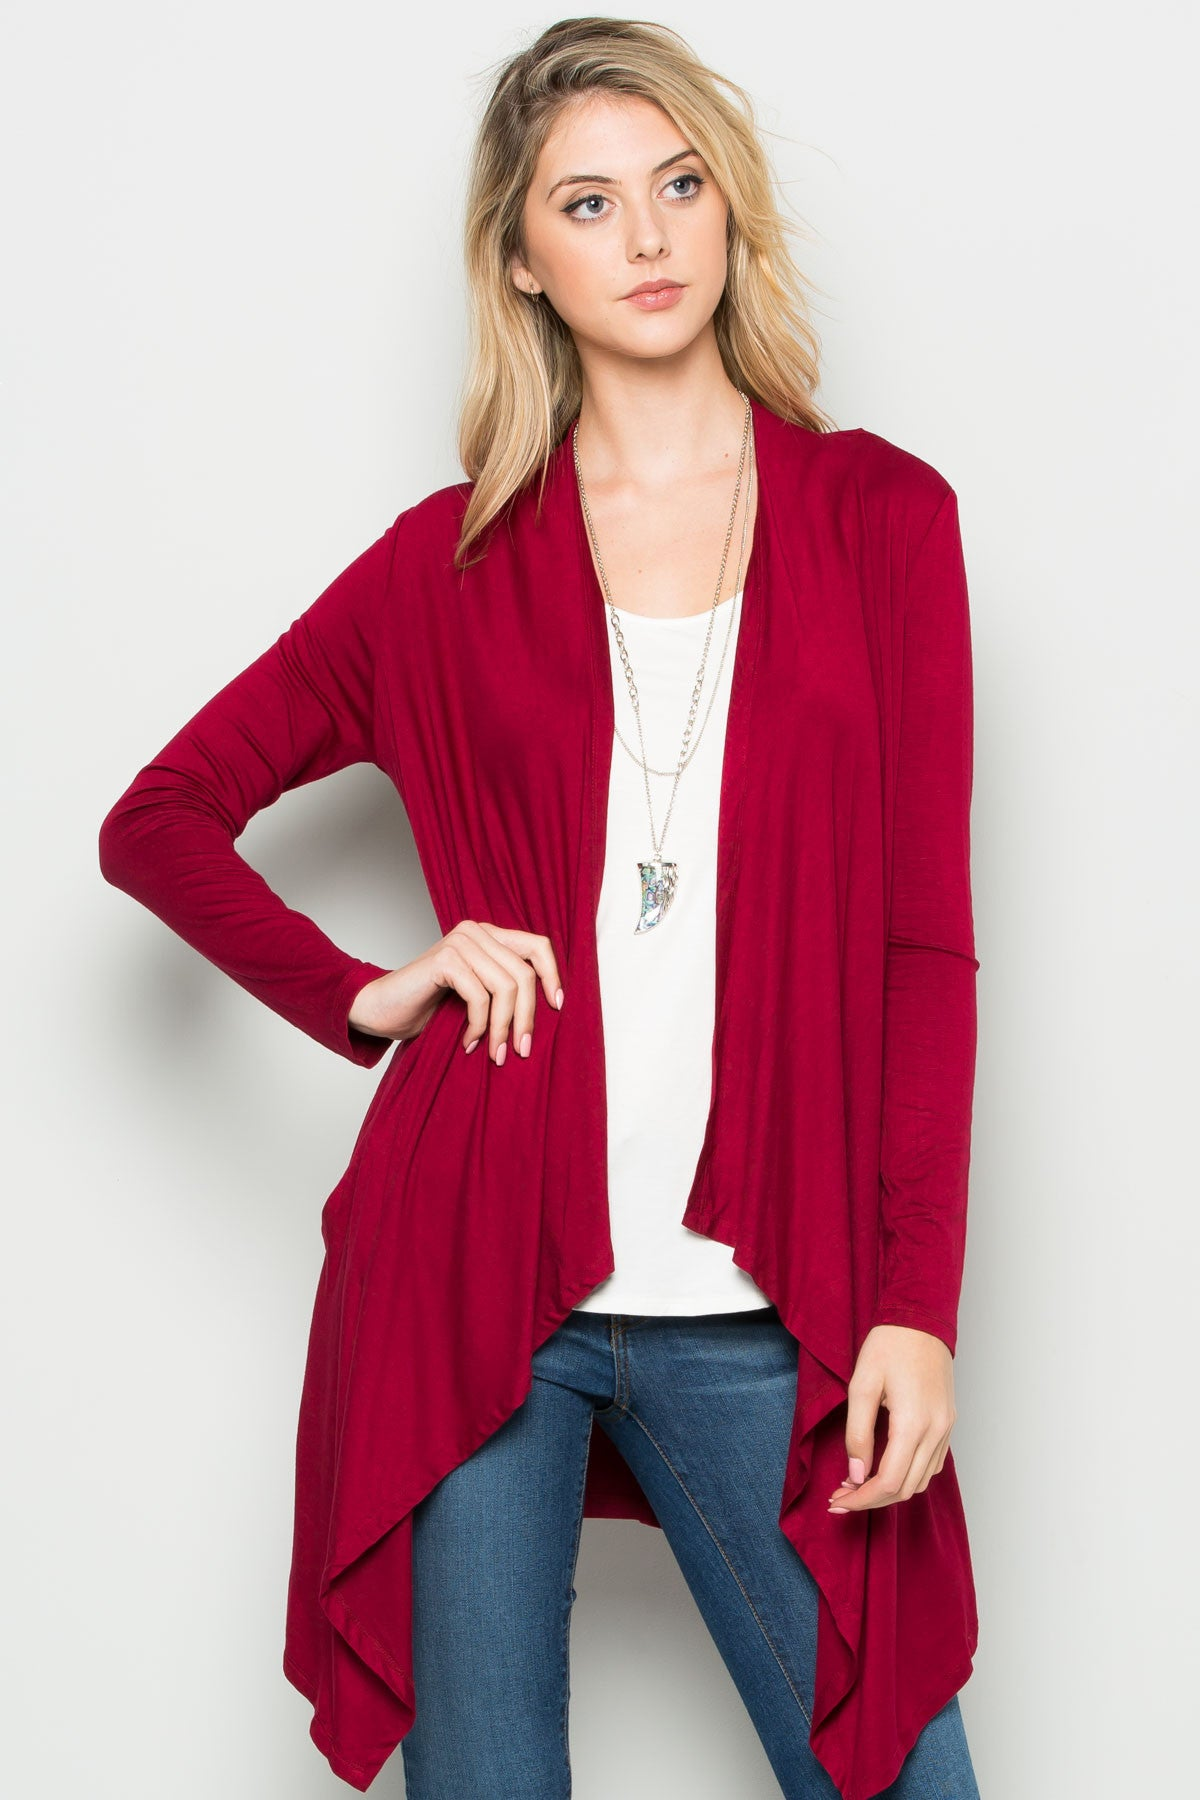 Burgundy Lightweight Long Sleeve Cardigan - Jacket - My Yuccie - 5